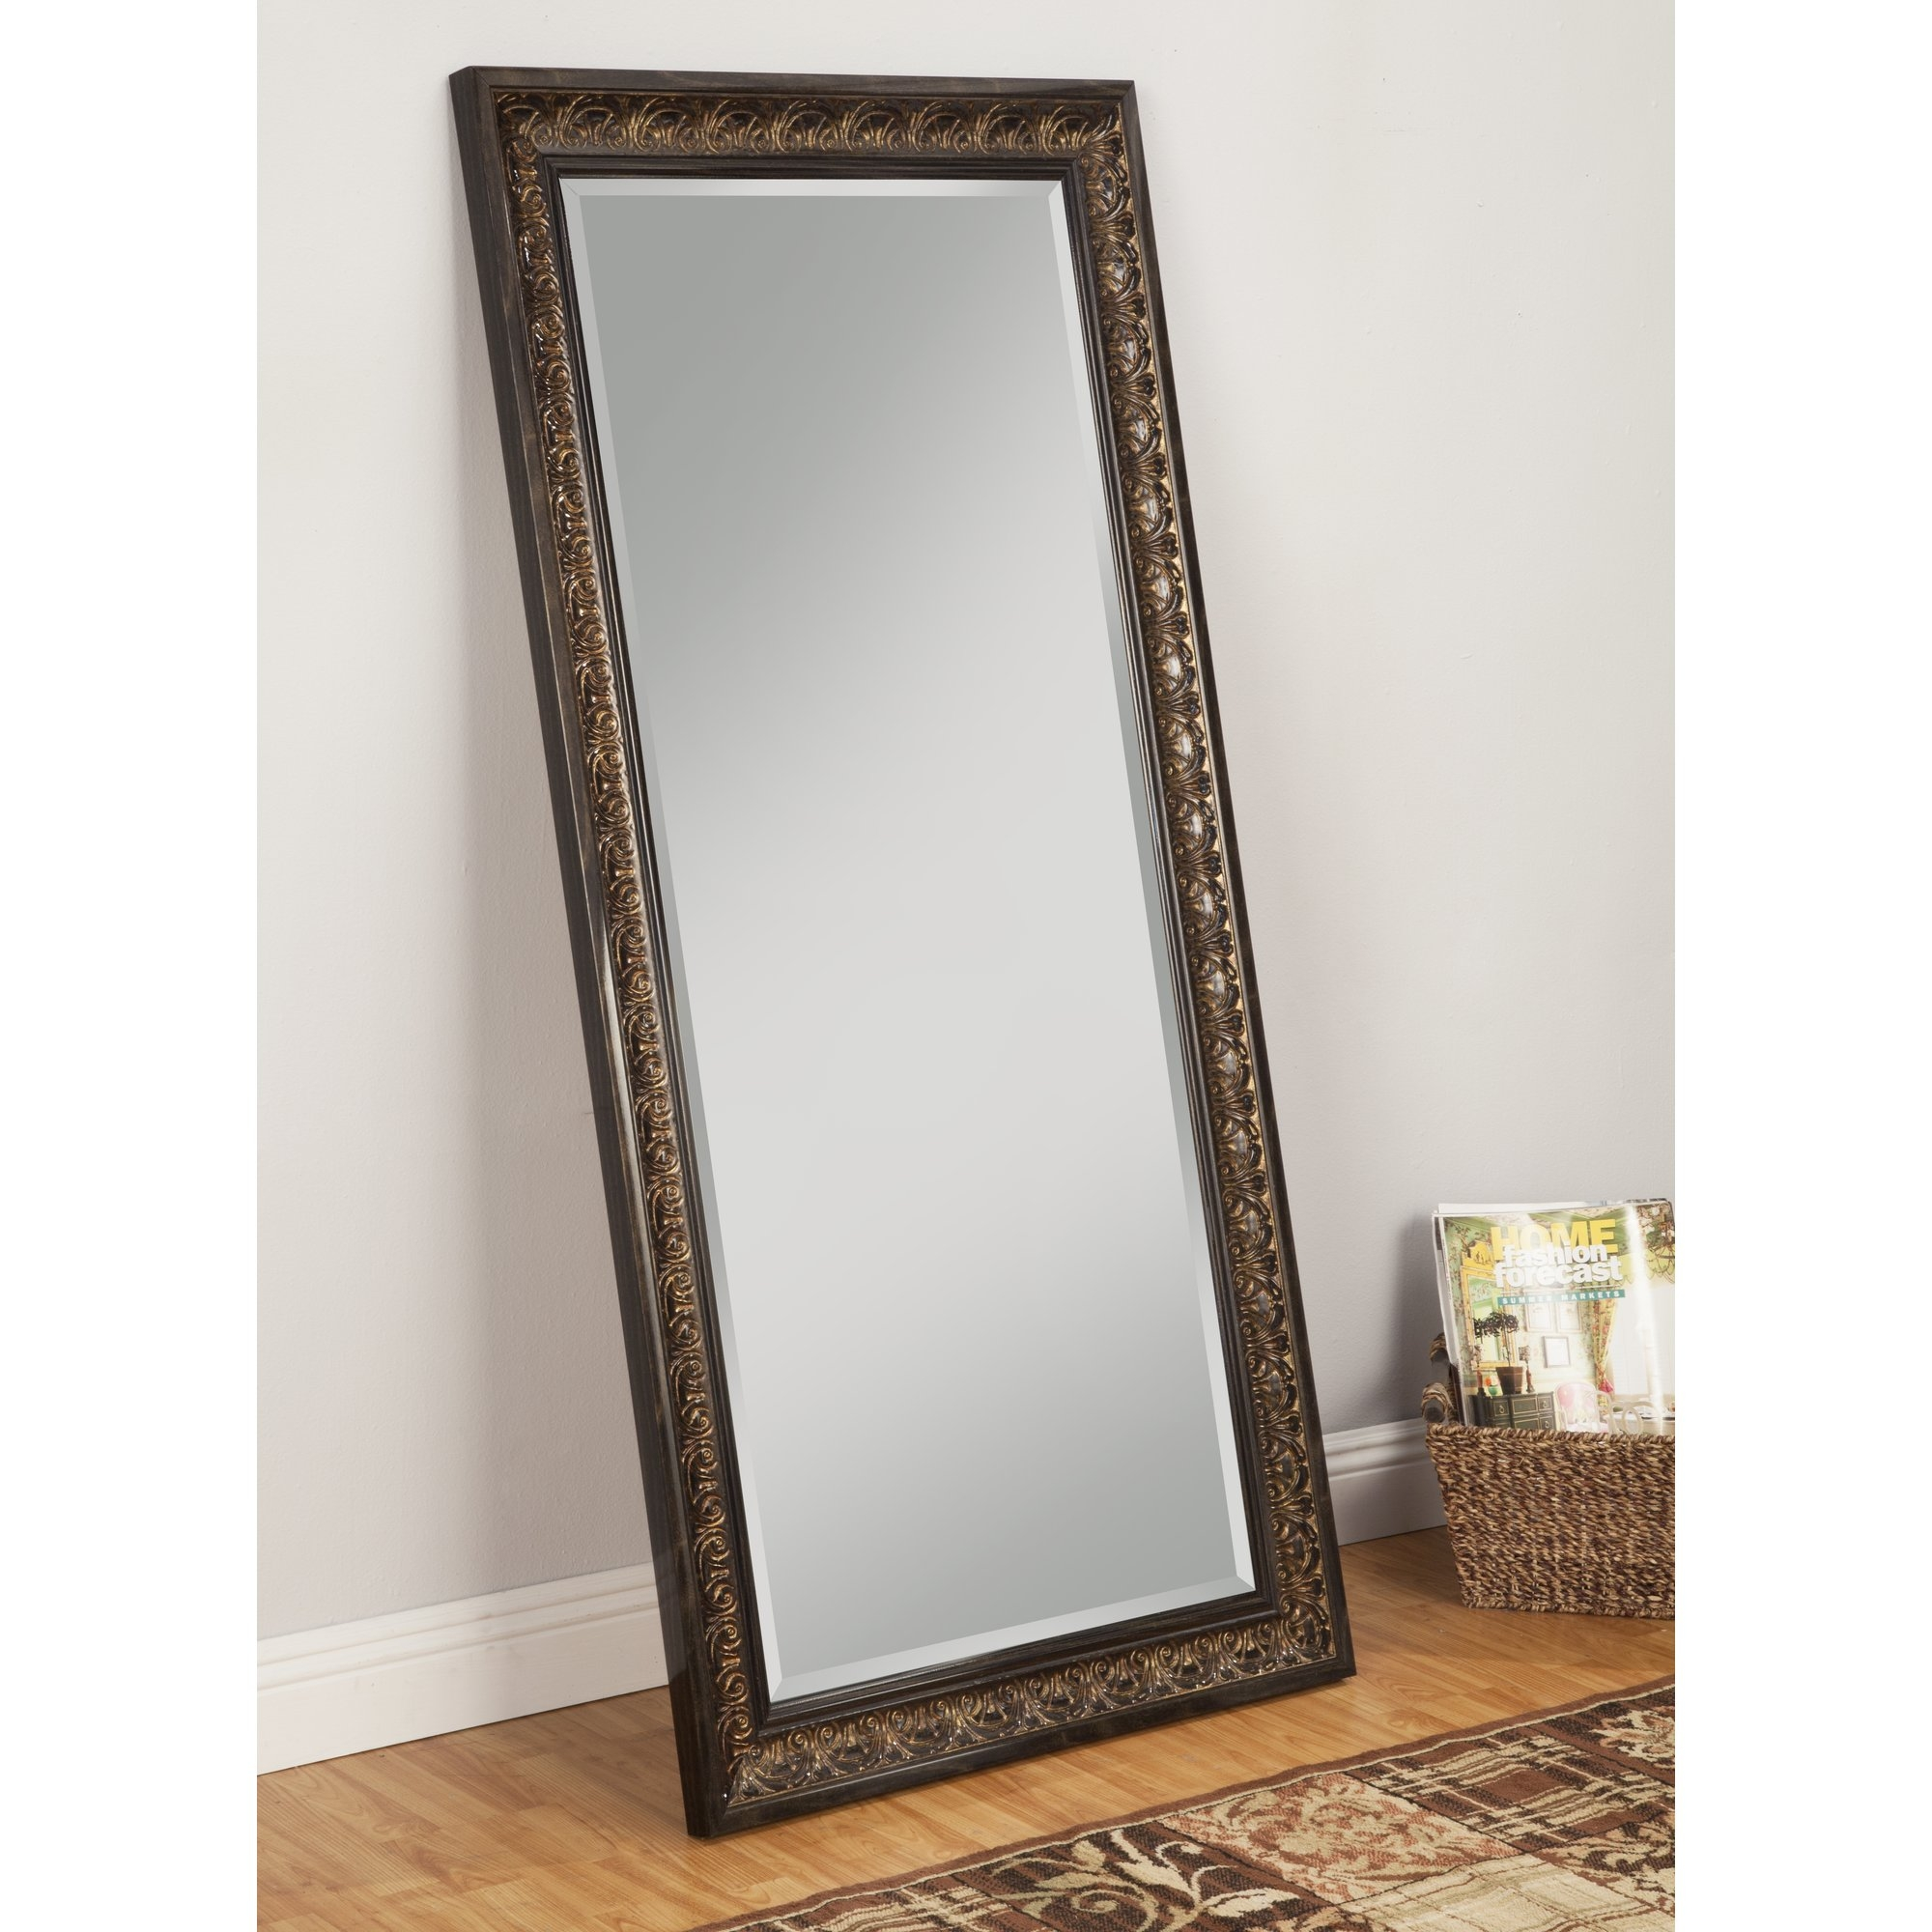 Shop 10165 Wall Mirrors Wayfair Intended For Long Decorative Mirror (View 7 of 15)